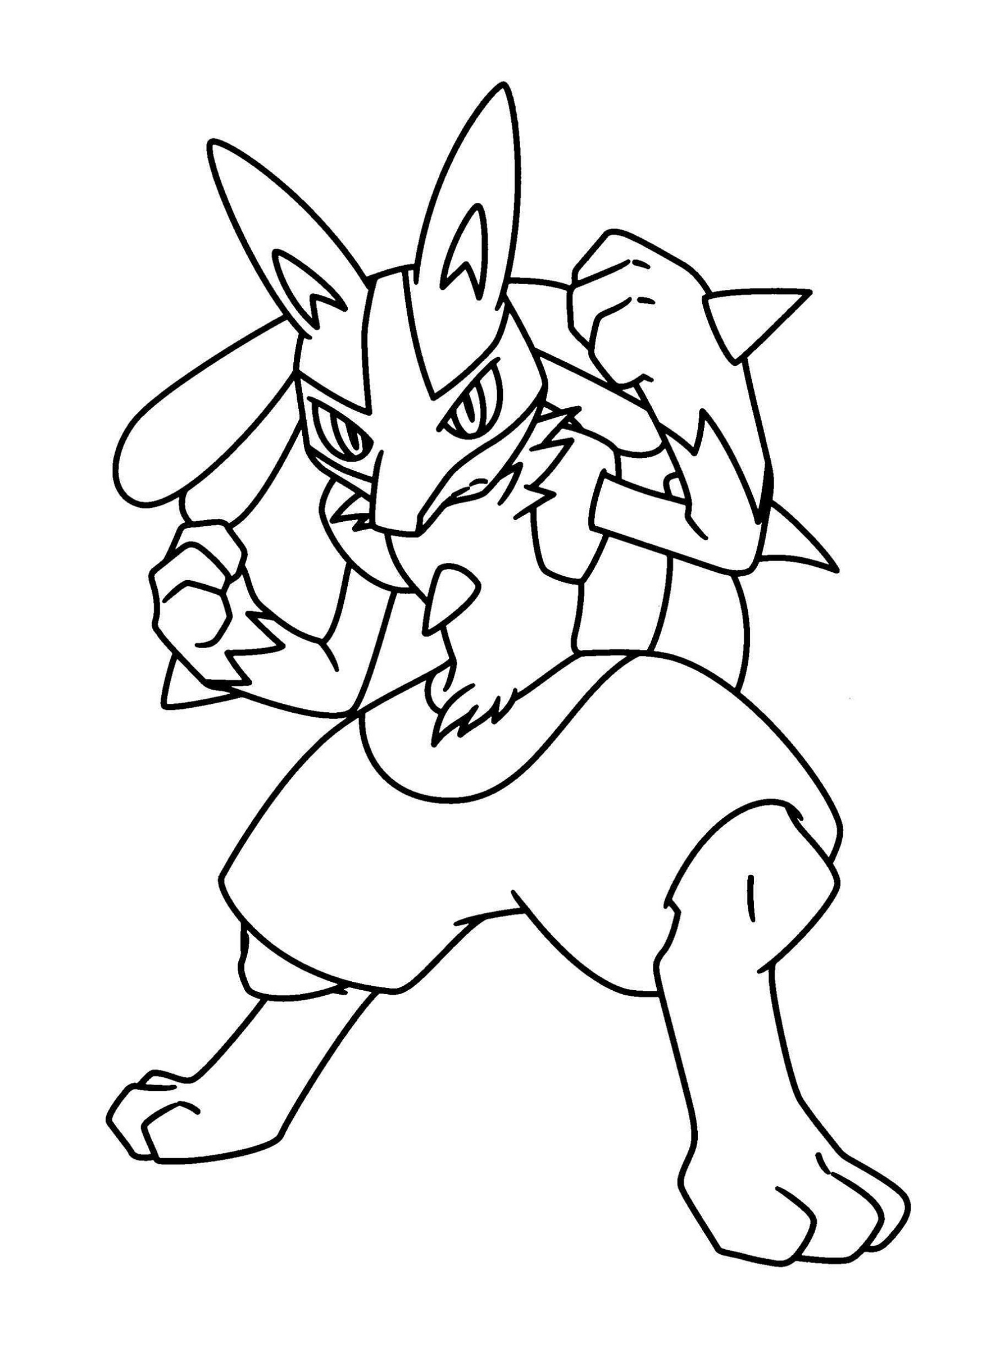 Lucario Coloring Page Free | 101 Worksheets | Pokemon ...